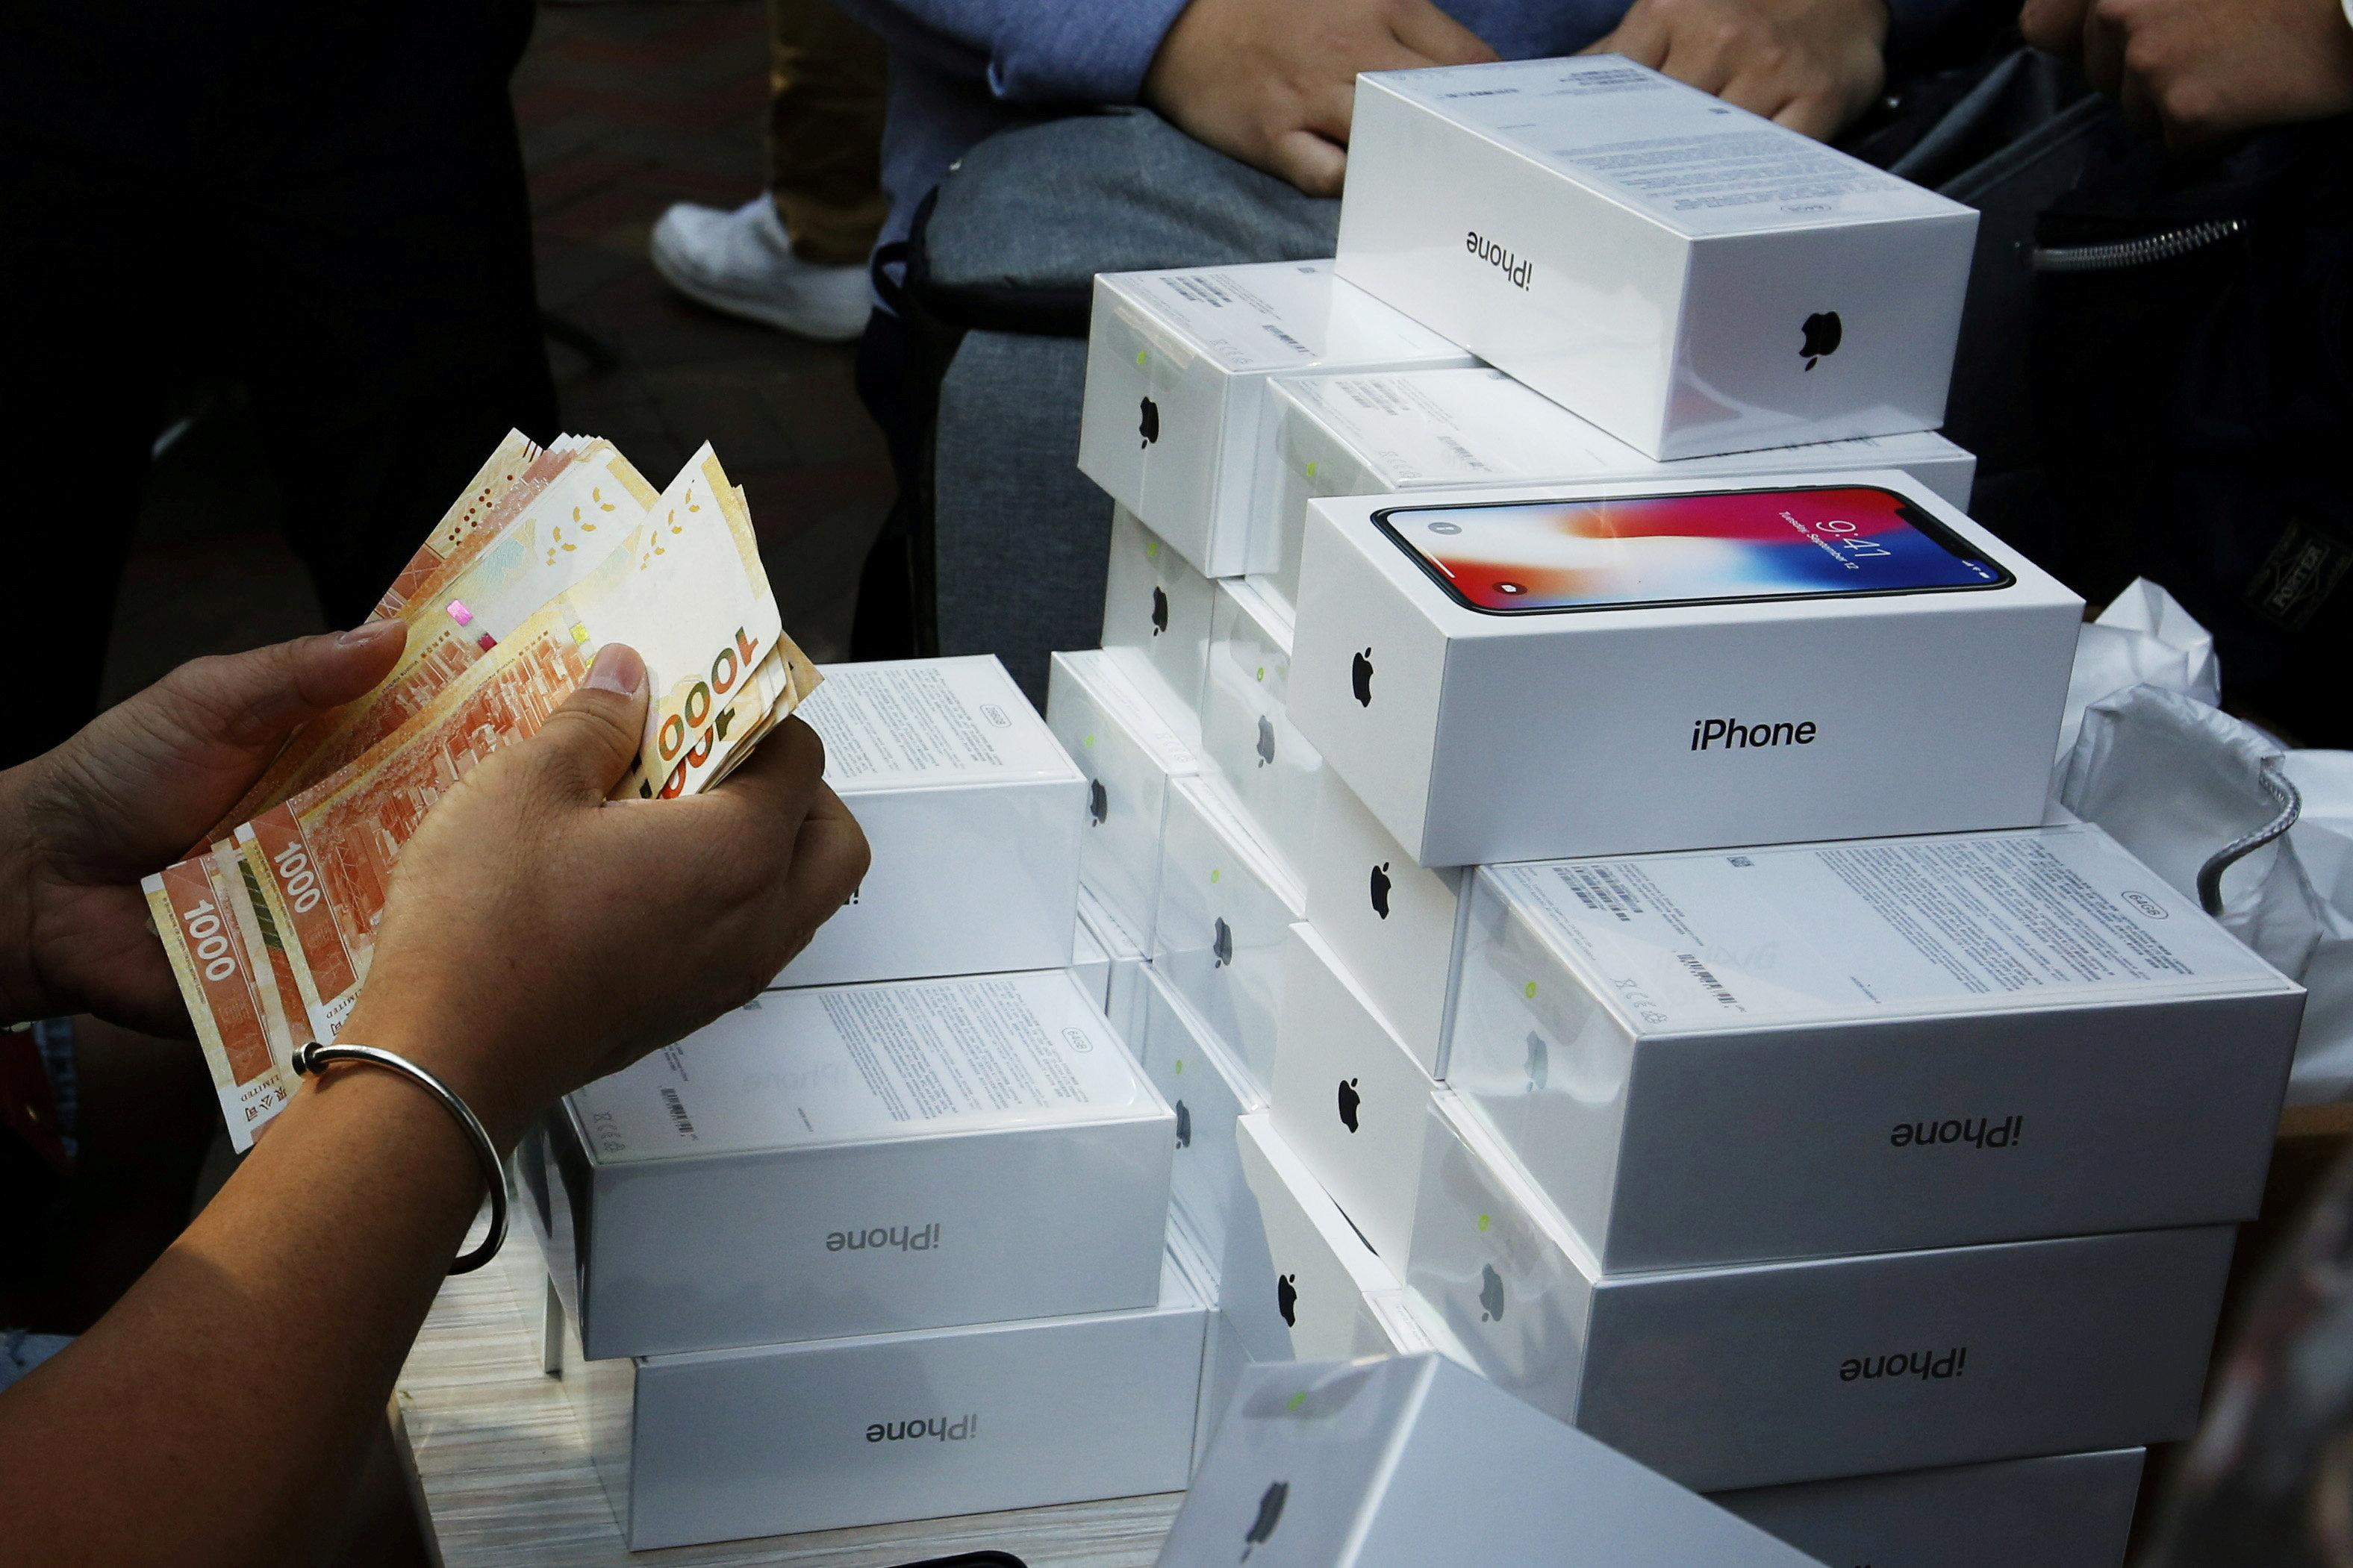 A man pays to buy new iPhone Xs from those who just bought at Apple Stores, on a street in Hong Kong, China November 3, 2017.  Bobby Yip